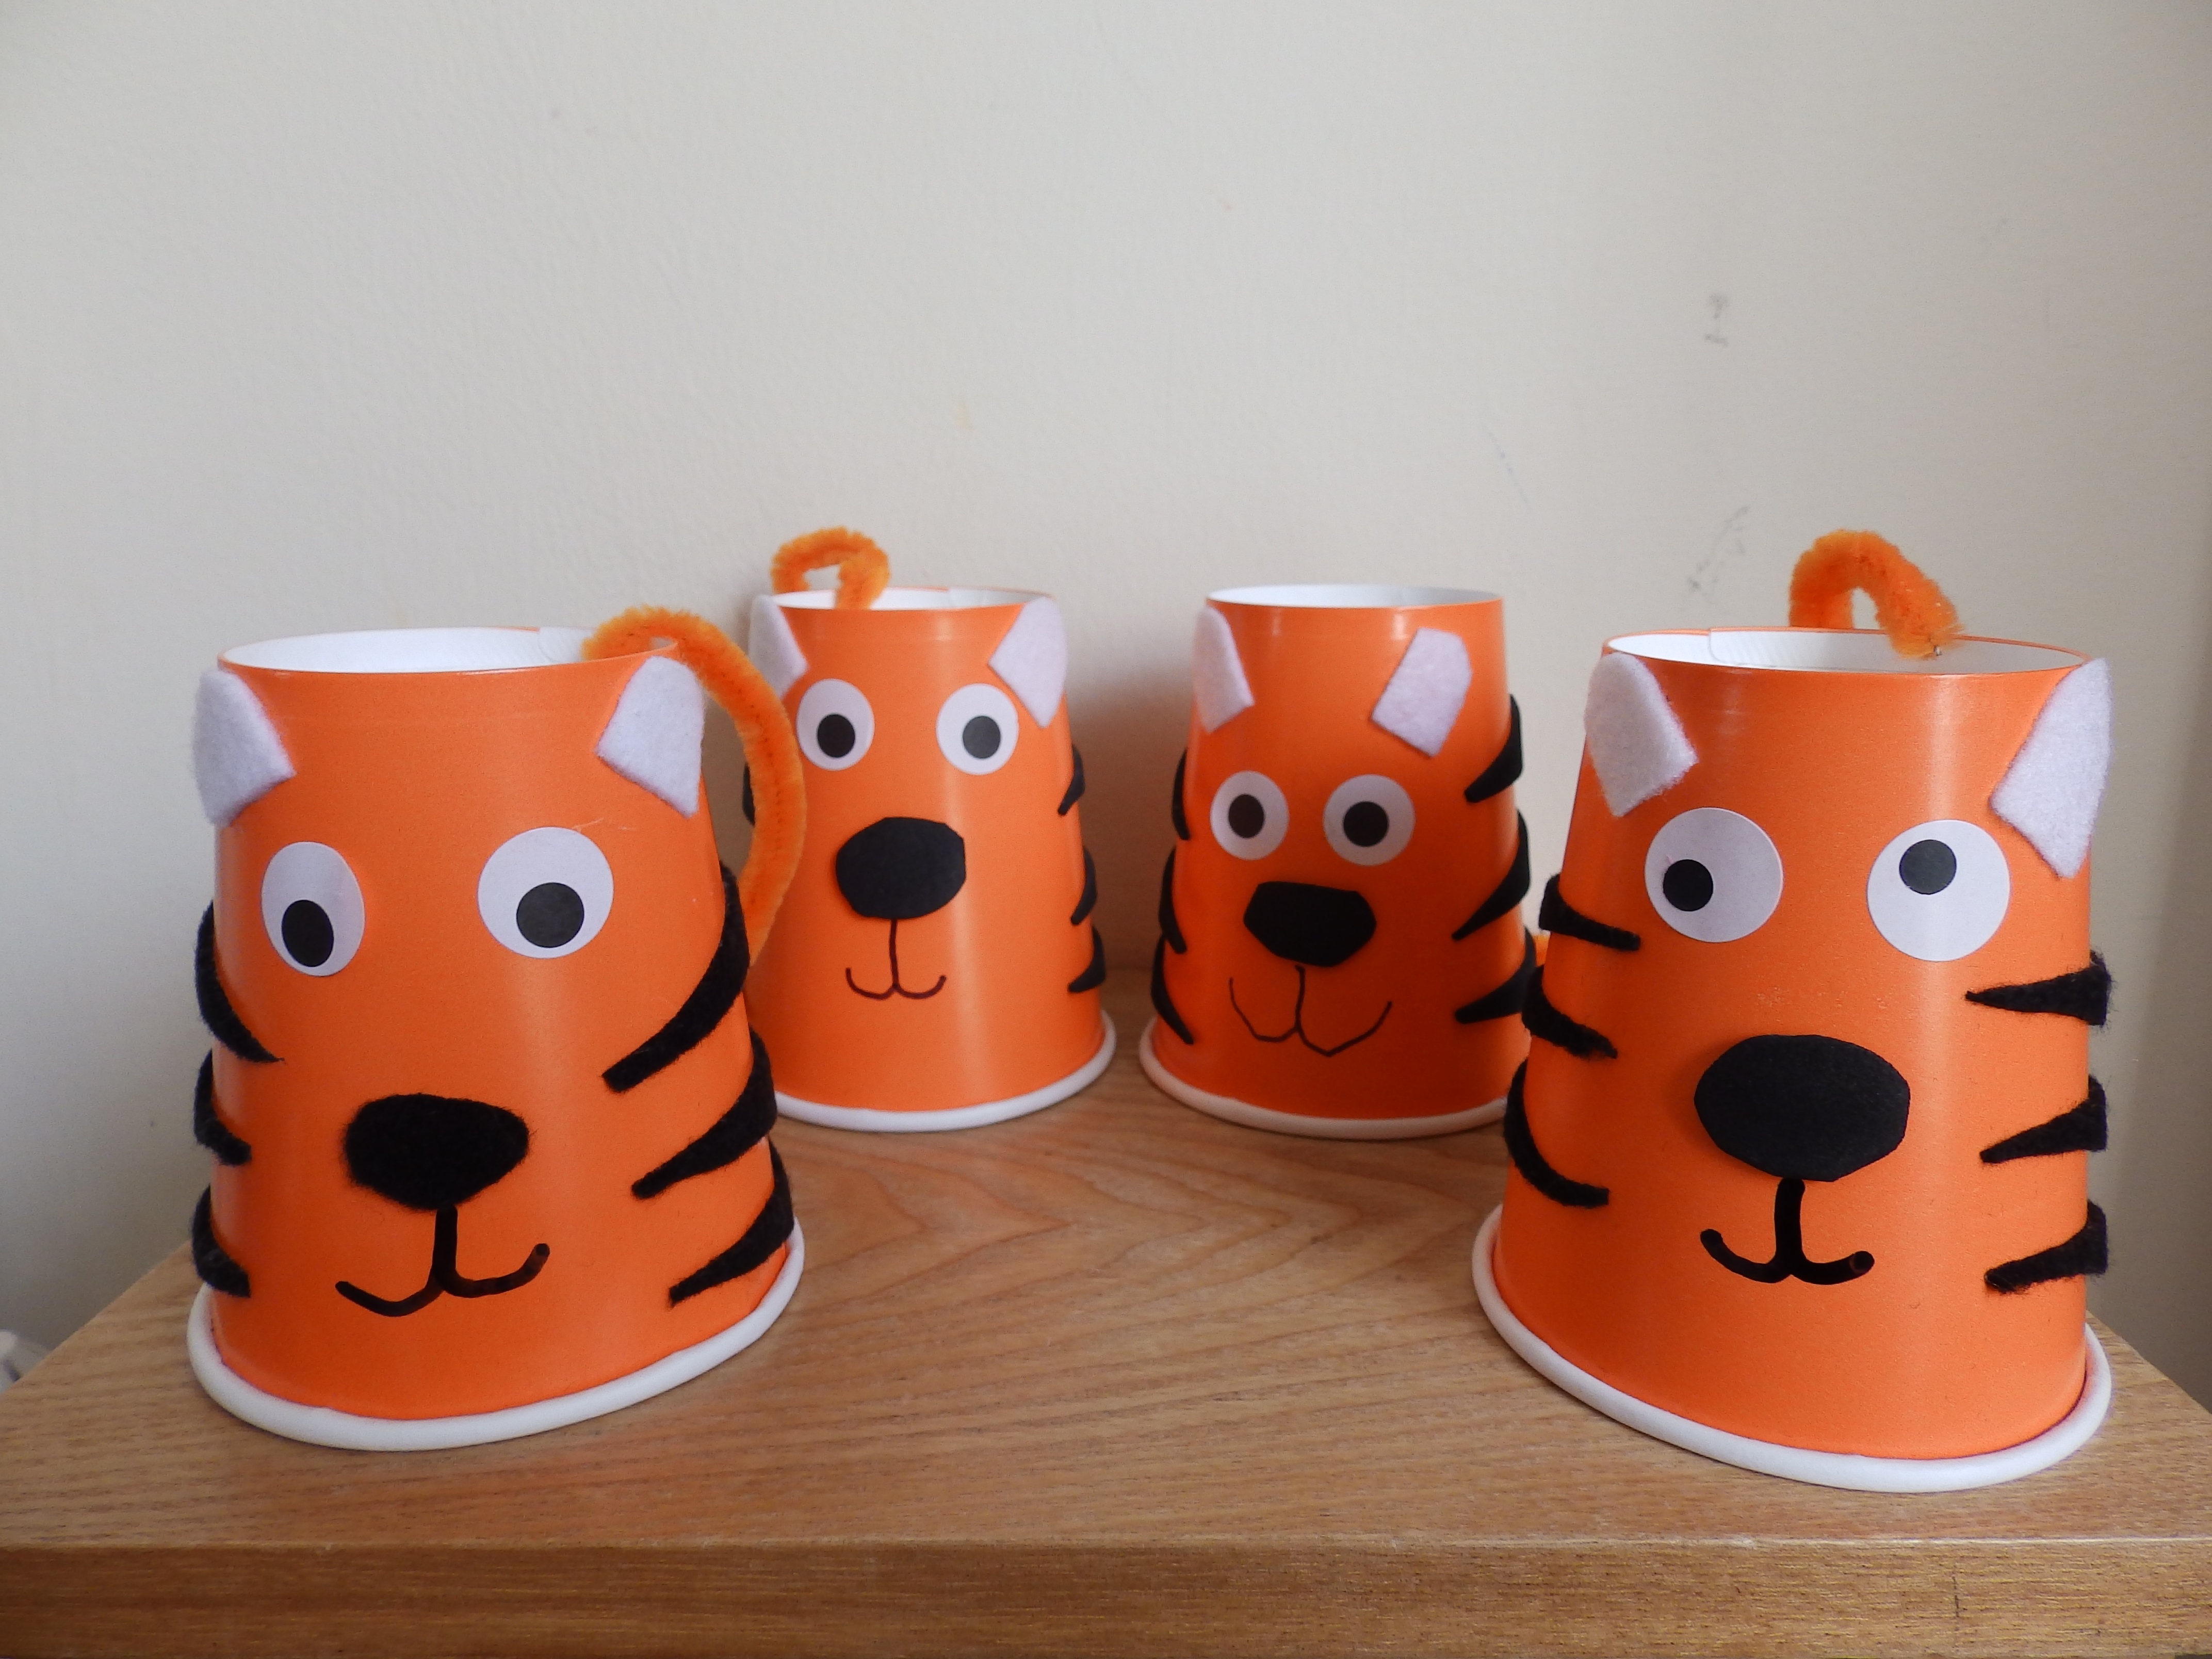 Grr tiger cup craft craftingcherubsblog tiger cup craft craftingcherubsblog jeuxipadfo Image collections